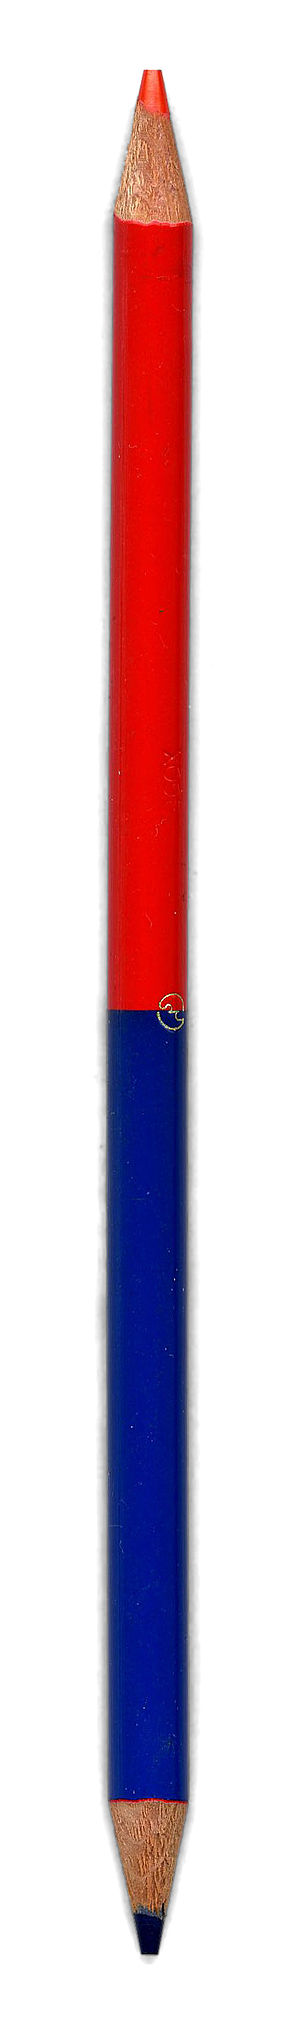 Blue pencil (editing) - A red and blue pencil